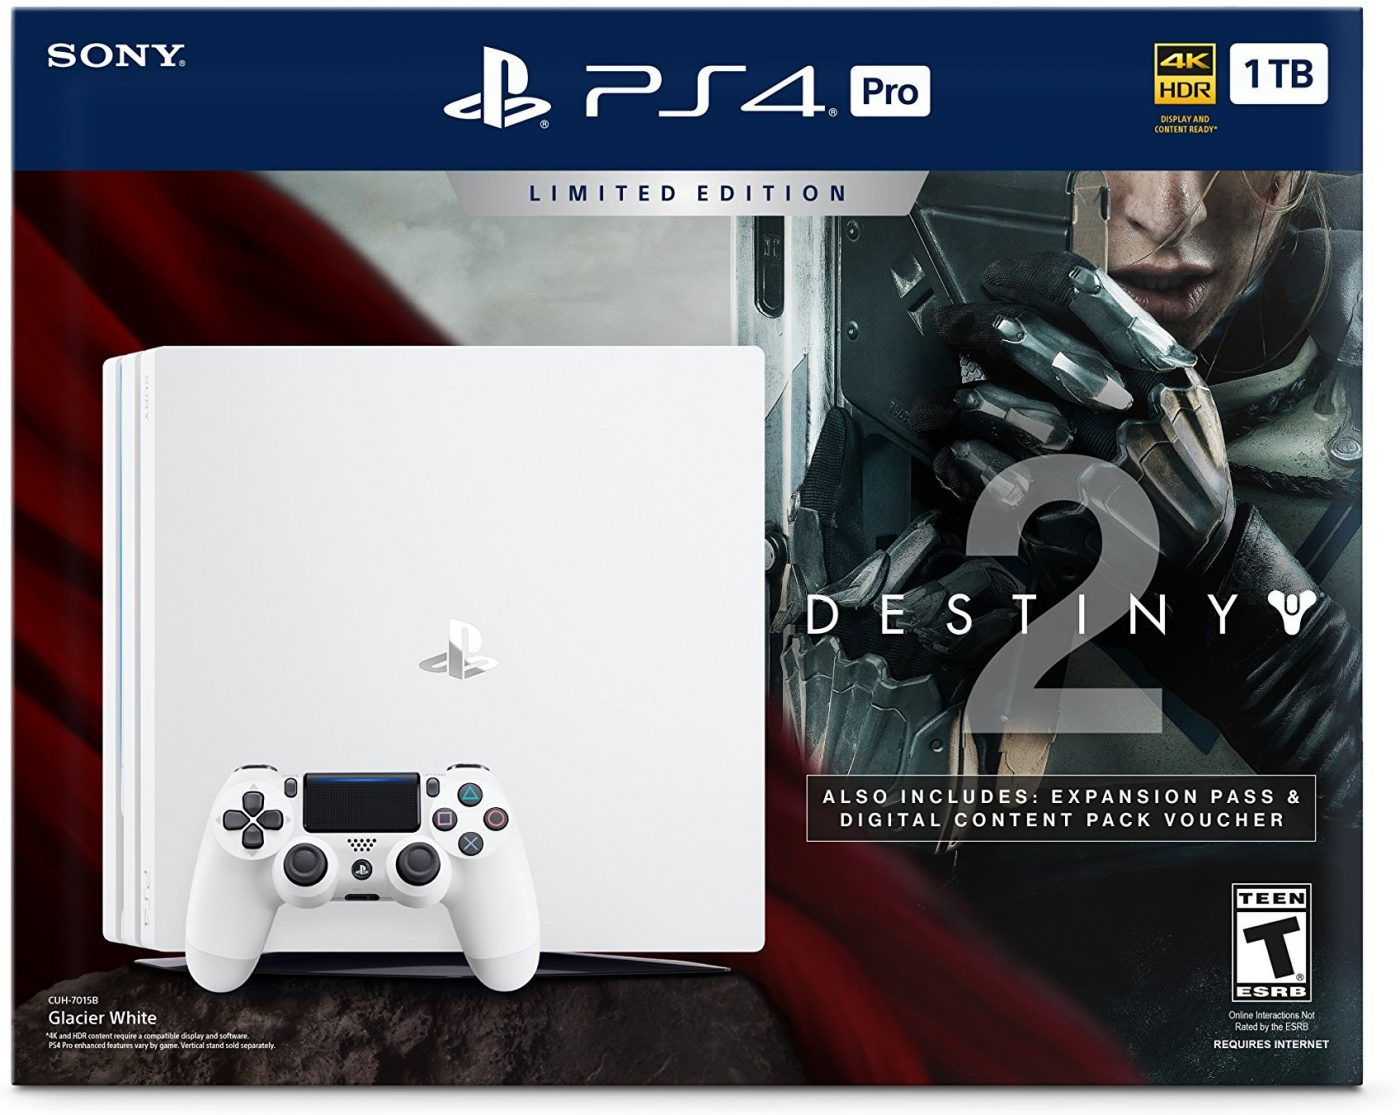 Get the 1TB PS4 and Destiny 2 for the price of the console alone.